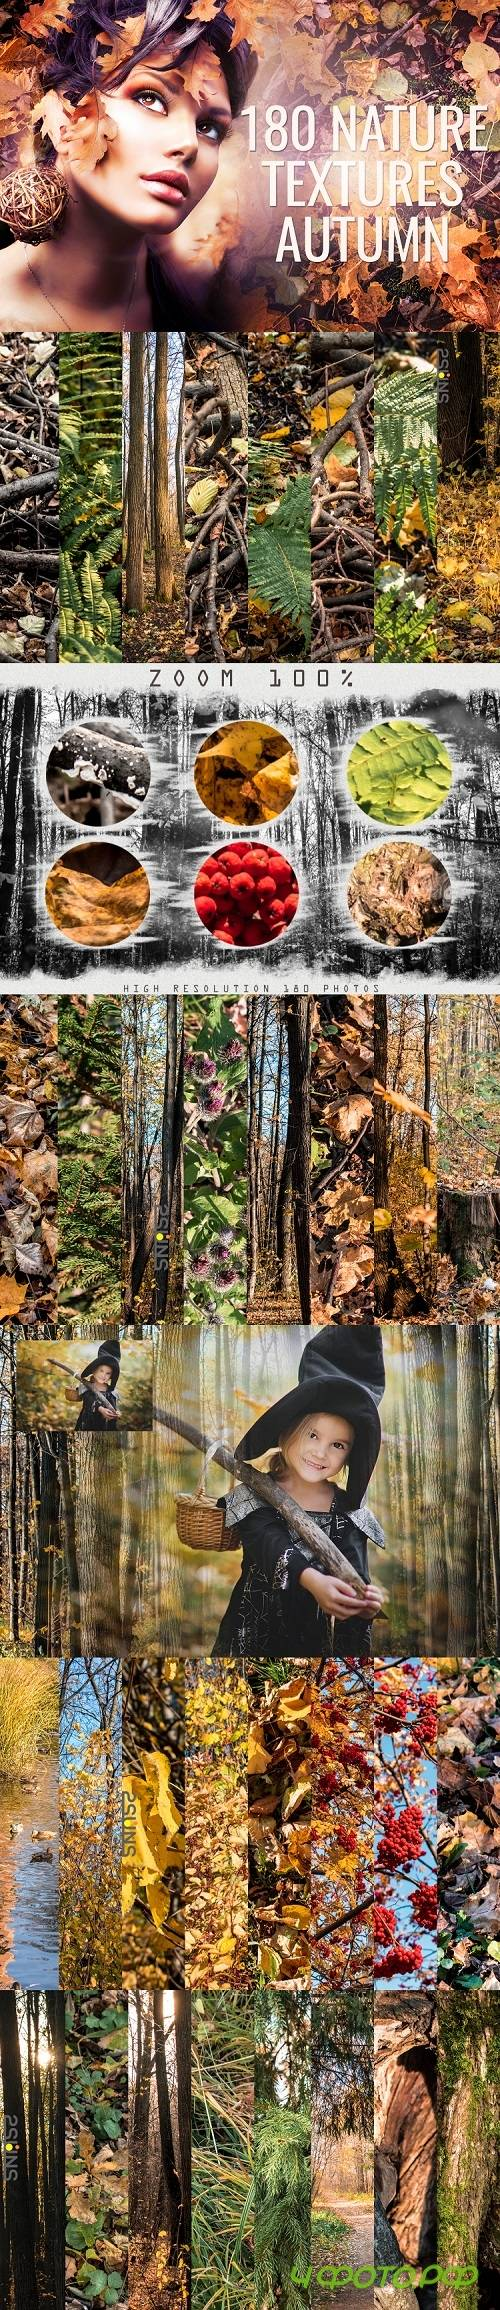 Autumn textures, fine art, textures, backdrop, photoshop - 374432 (Full collection)